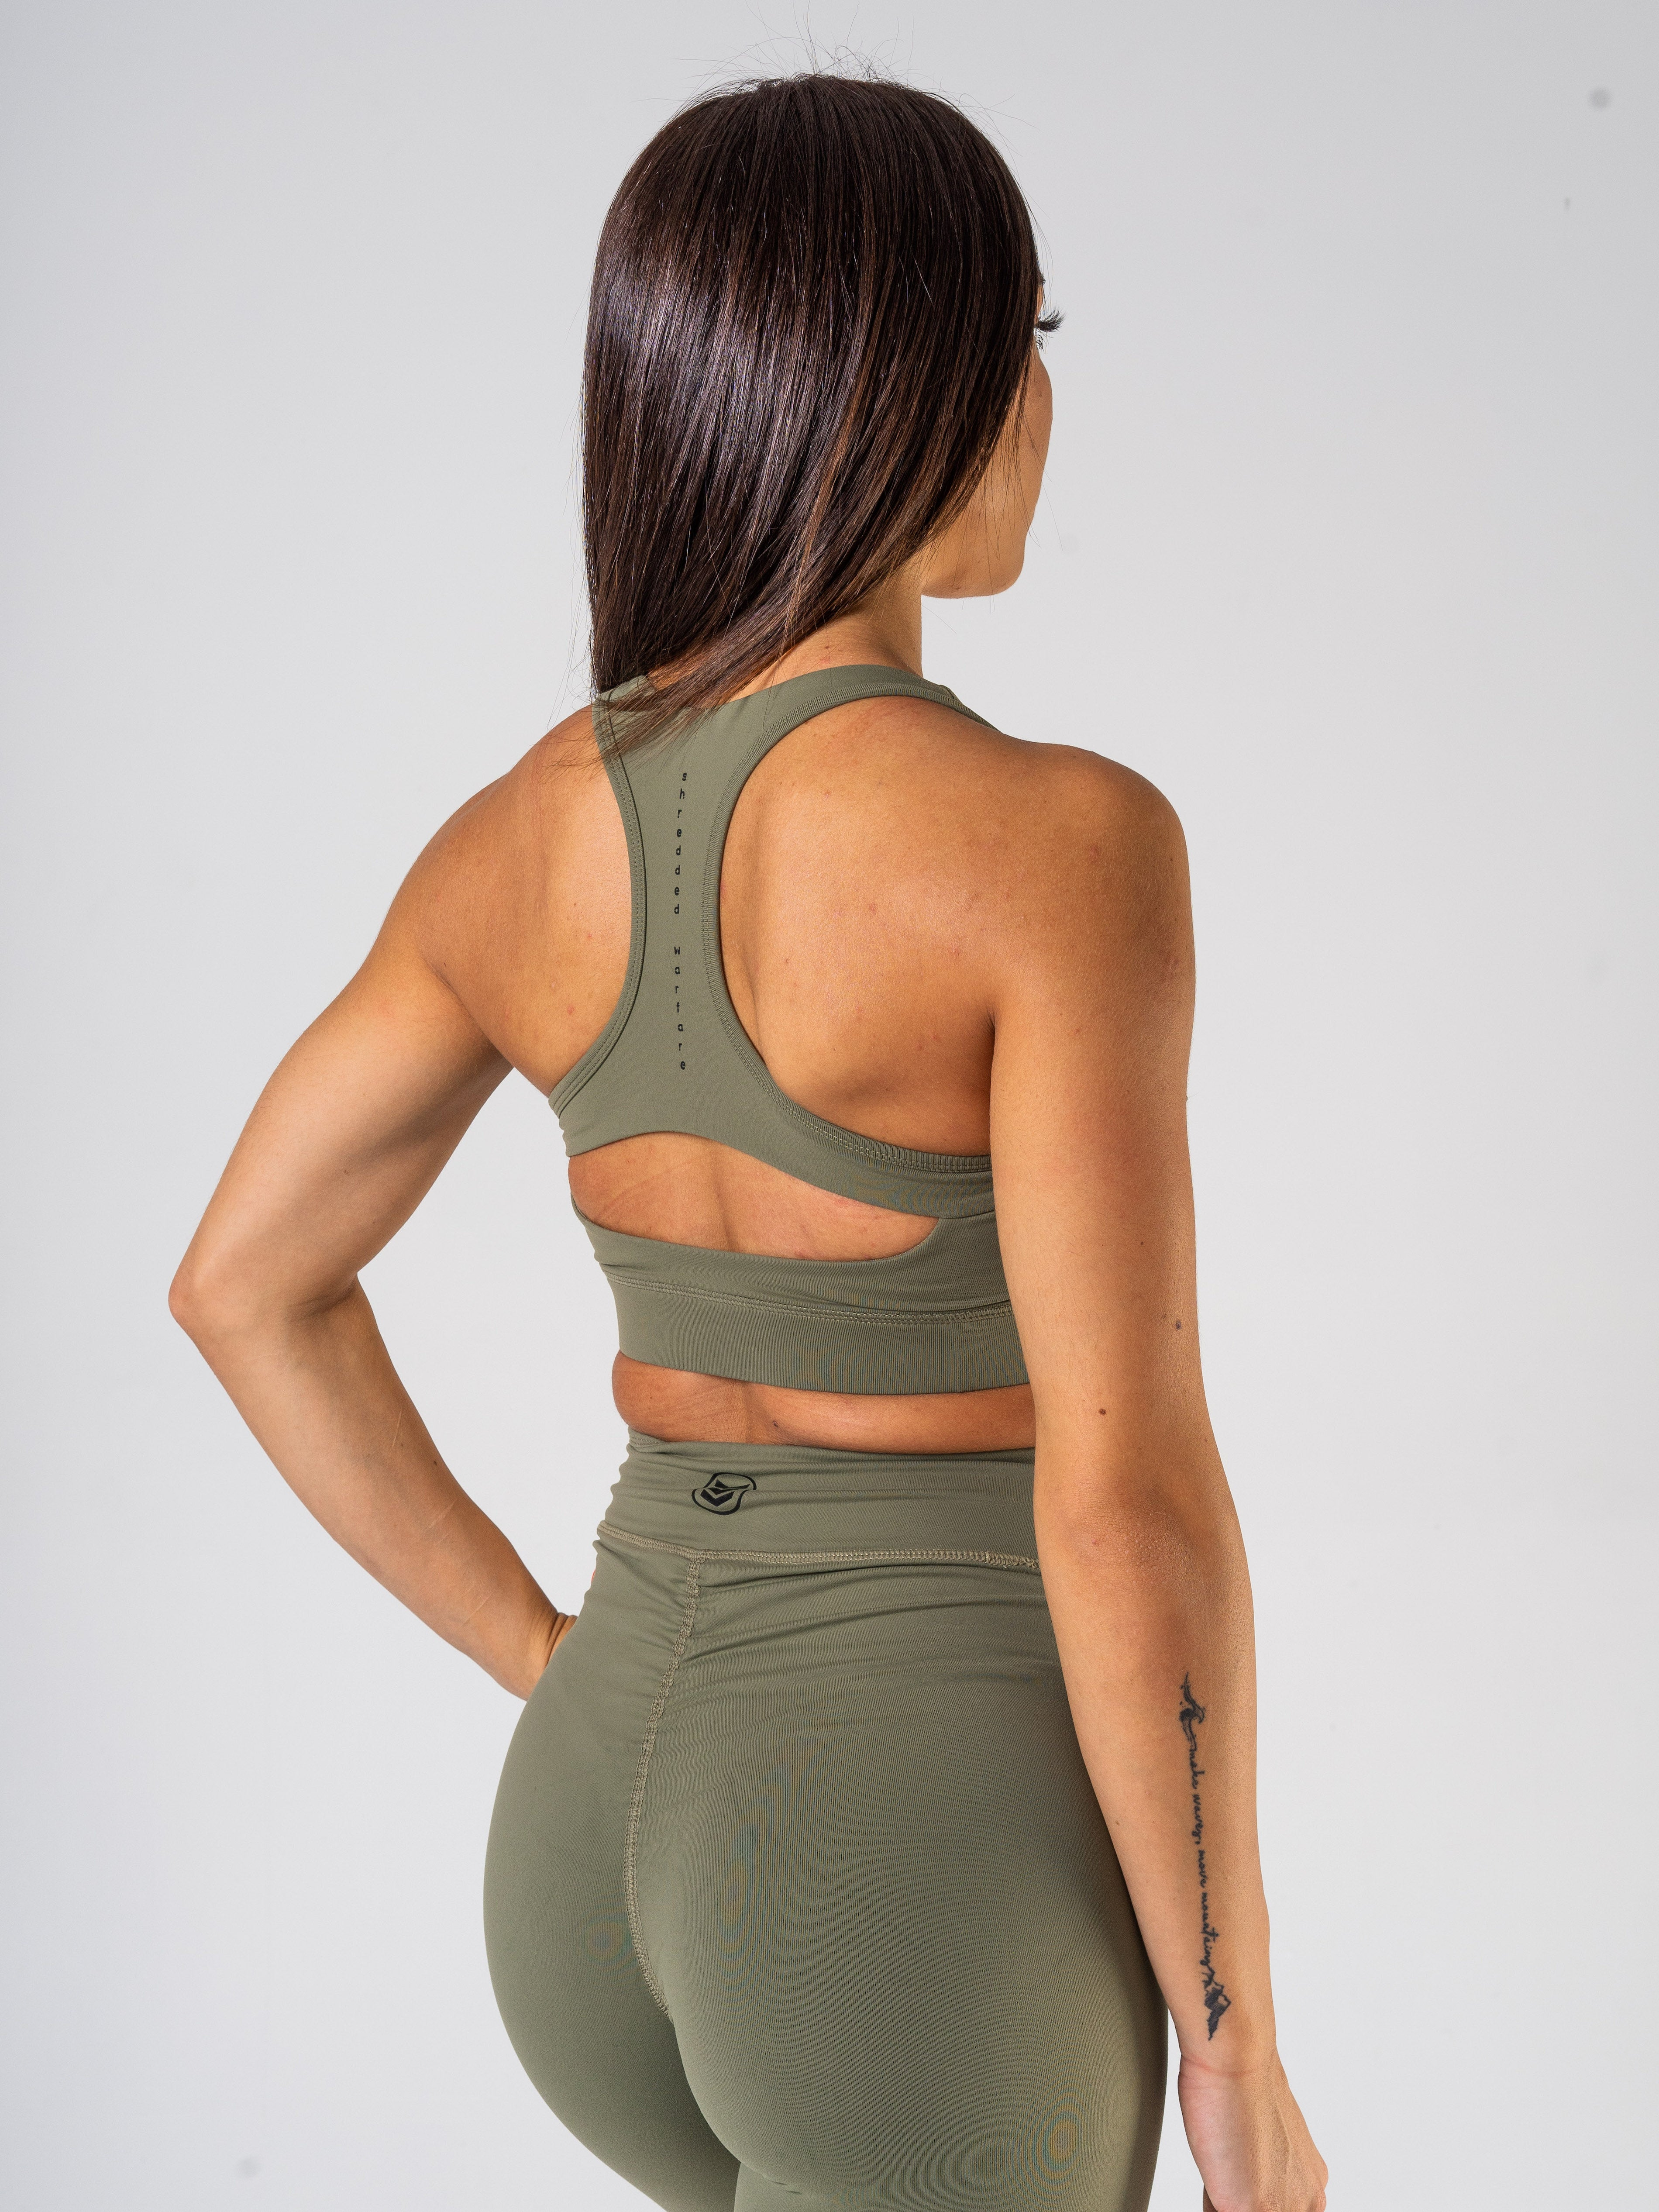 Ladies-U-Sports-Bra-Khaki-Green-Back-Shredded-Warfare